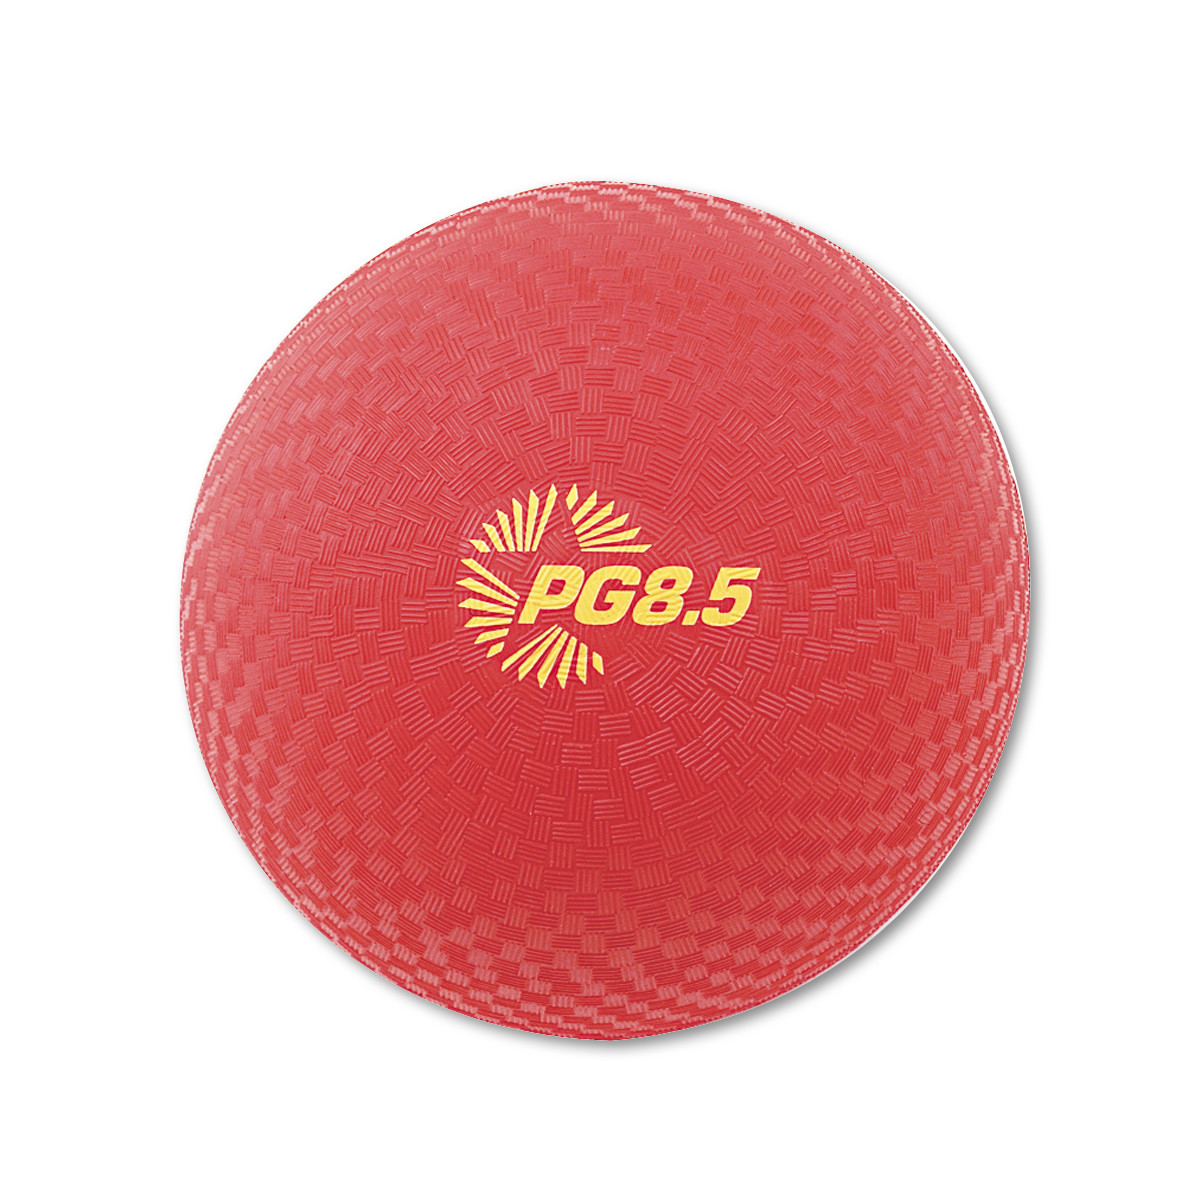 "Champion Sports Playground Ball, 8-1/2"" Diameter, Red -CSIPG85"